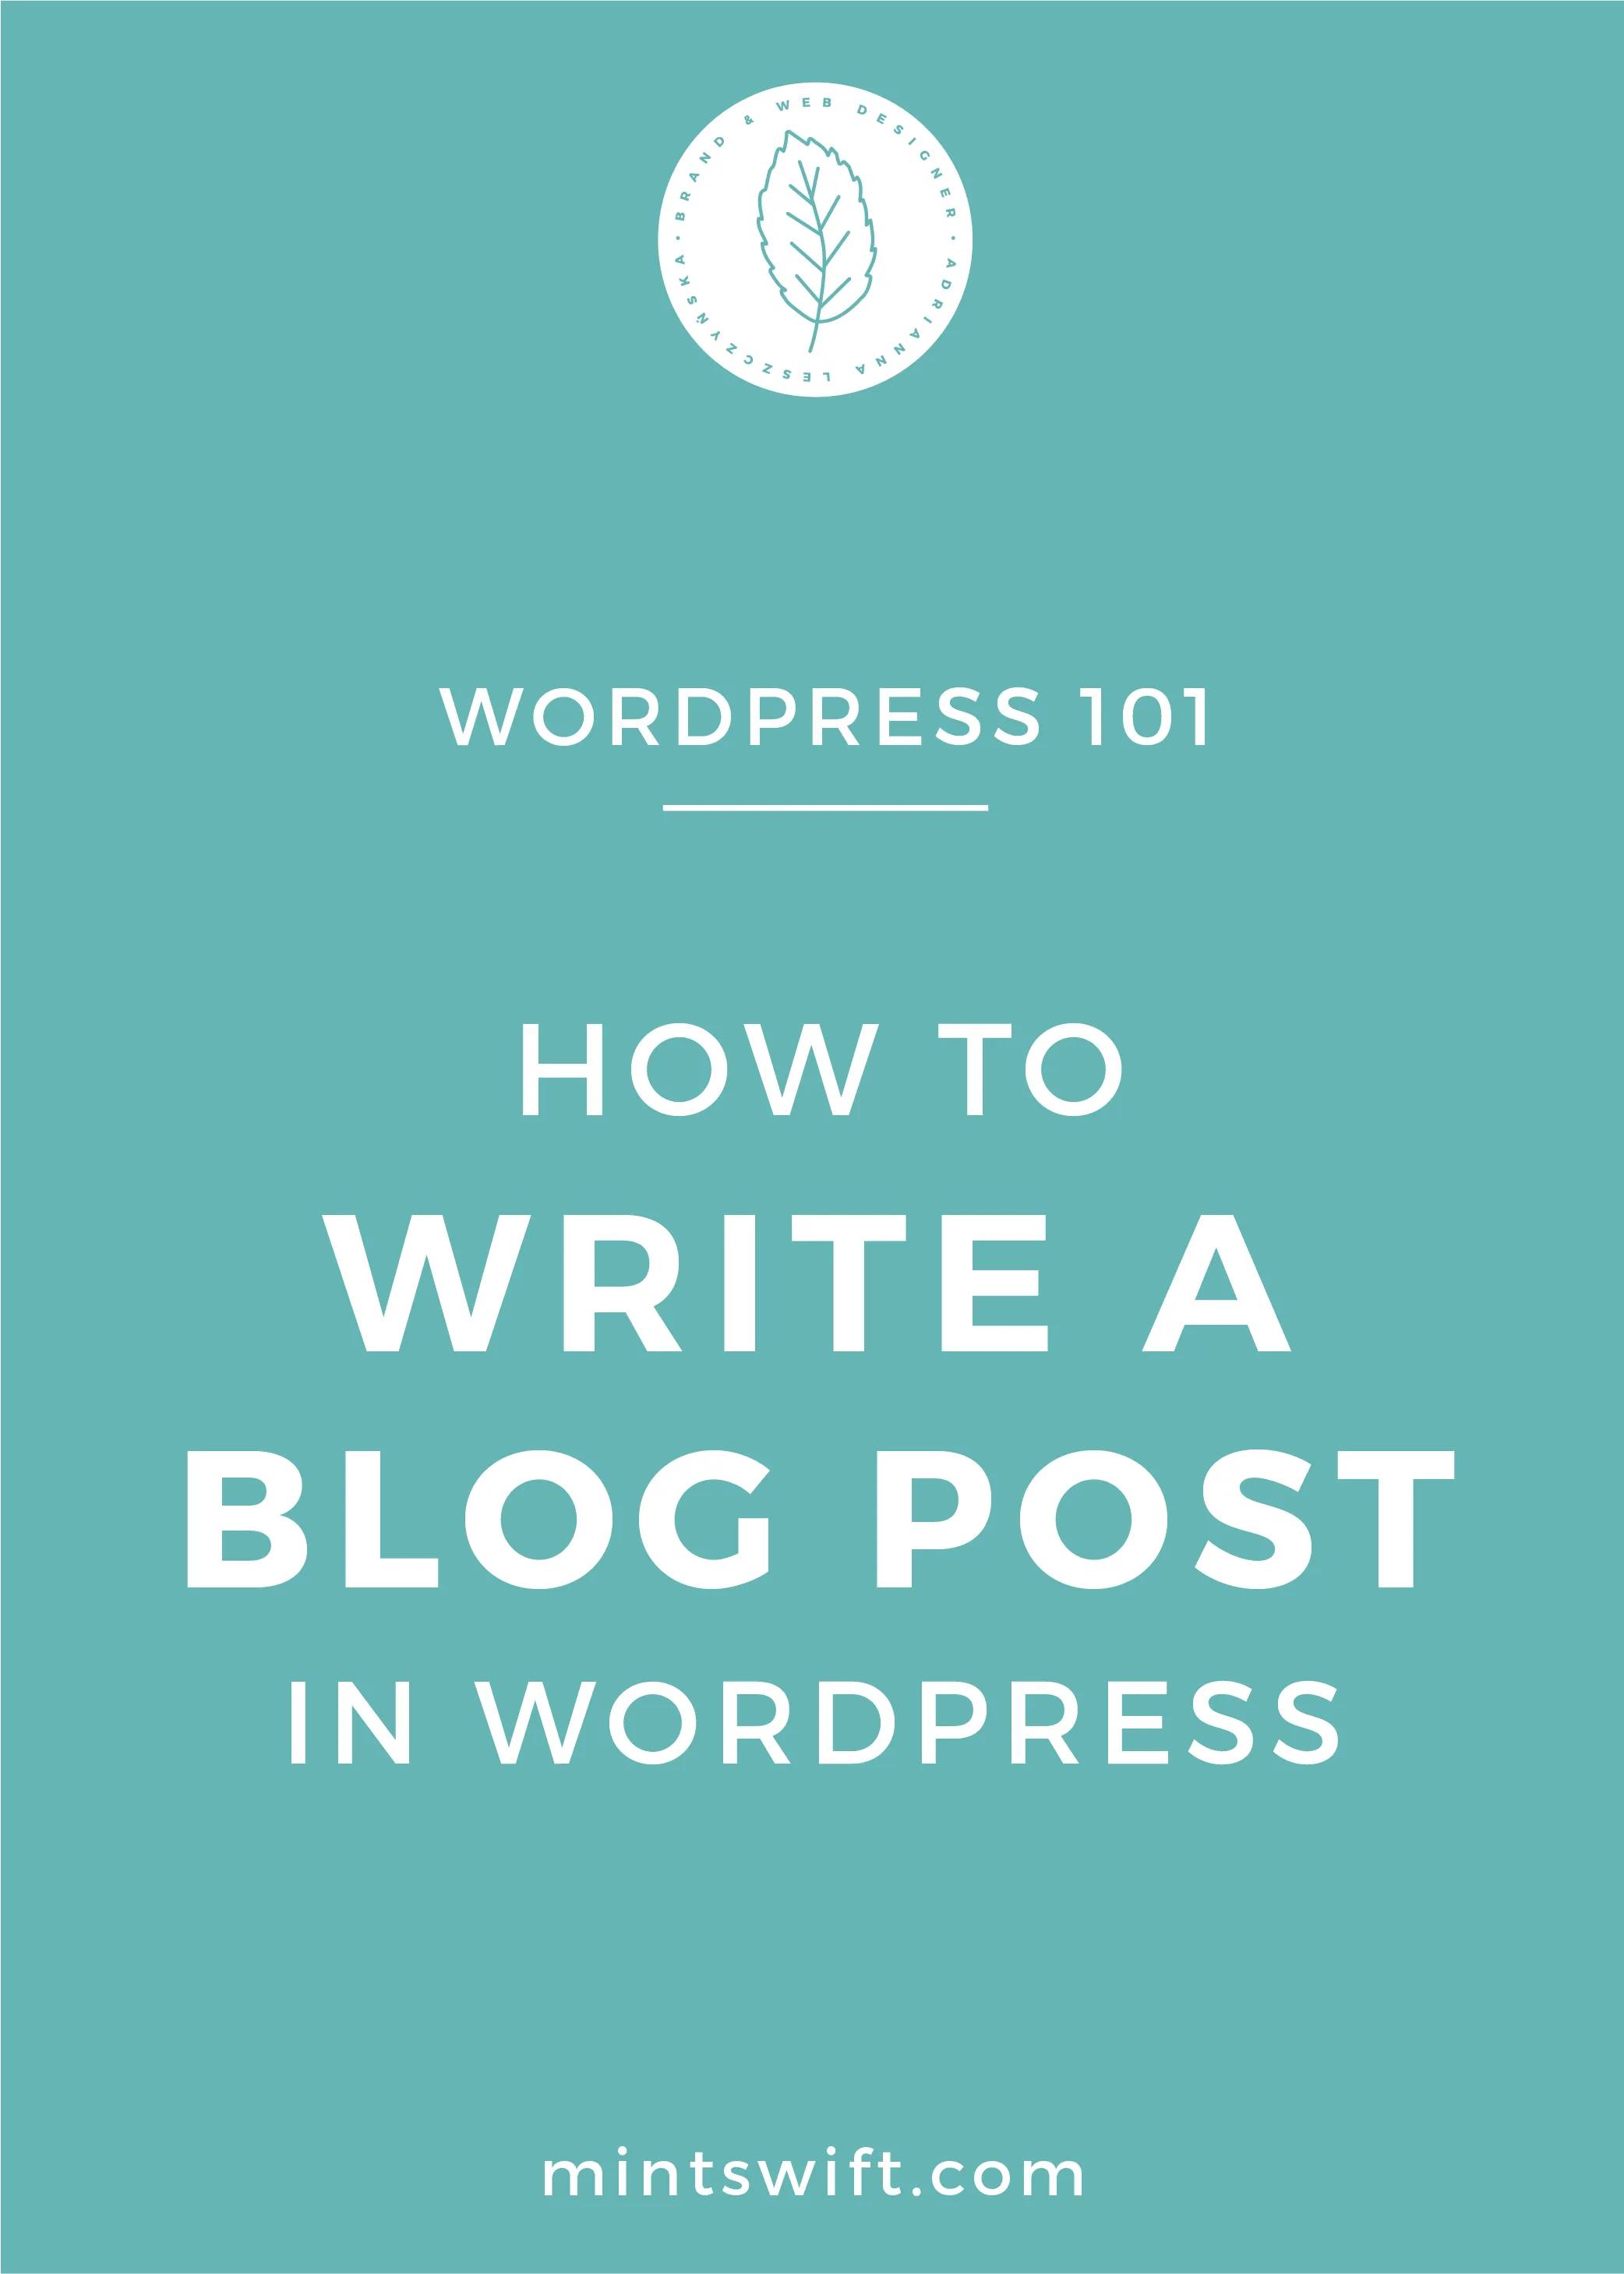 How to Write a Blog Post in WordPress - MintSwift